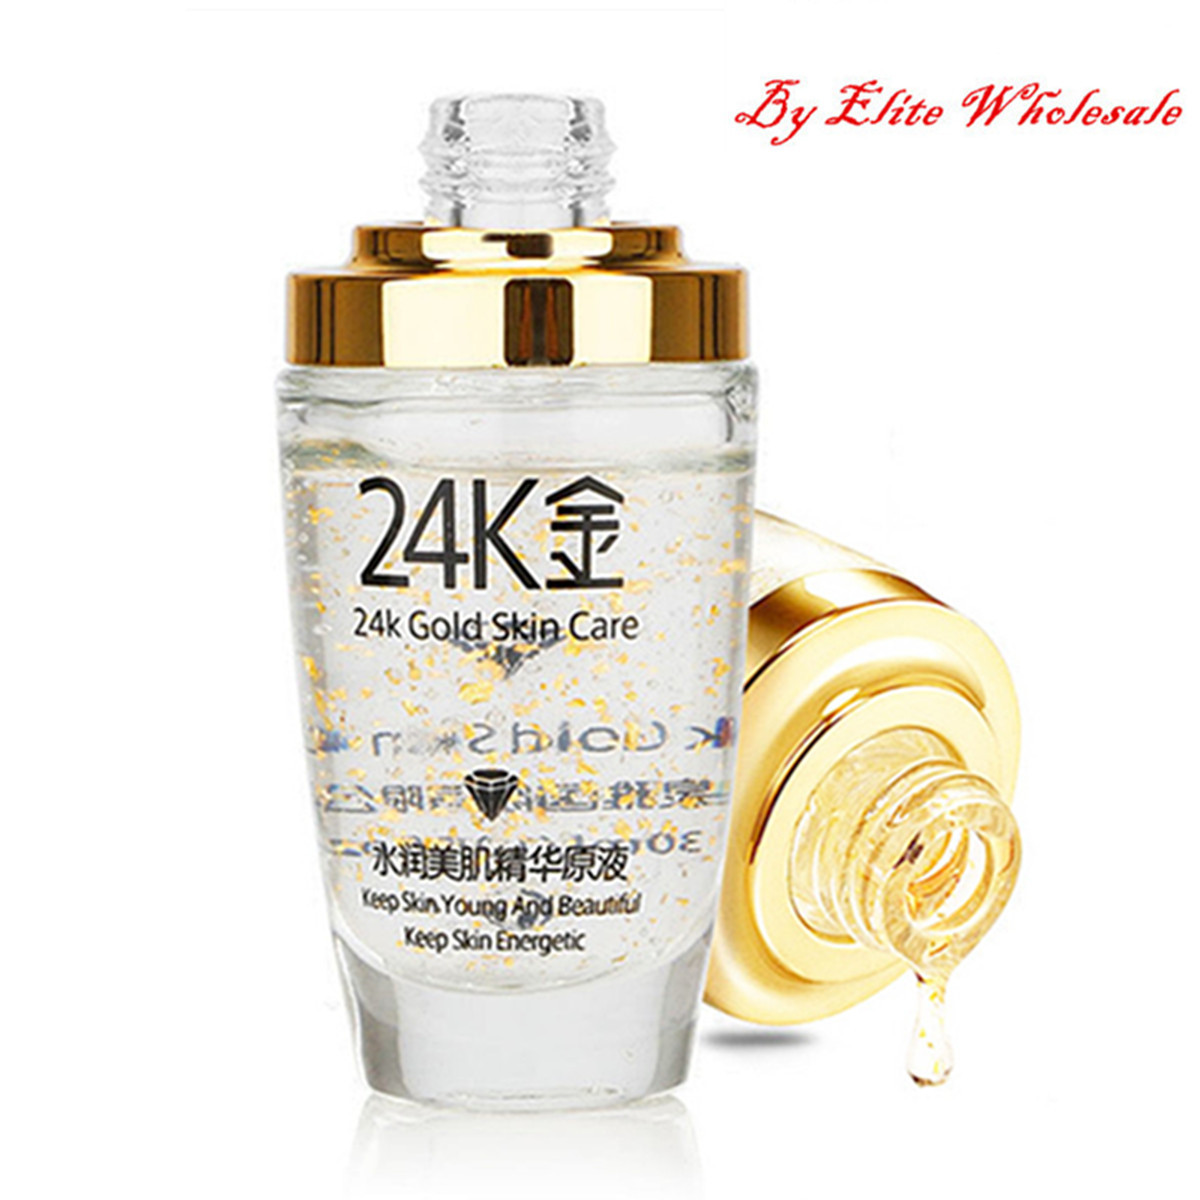 24K Gold Essence Anti-Wrinkle Skin Care Moisturizing Liquid